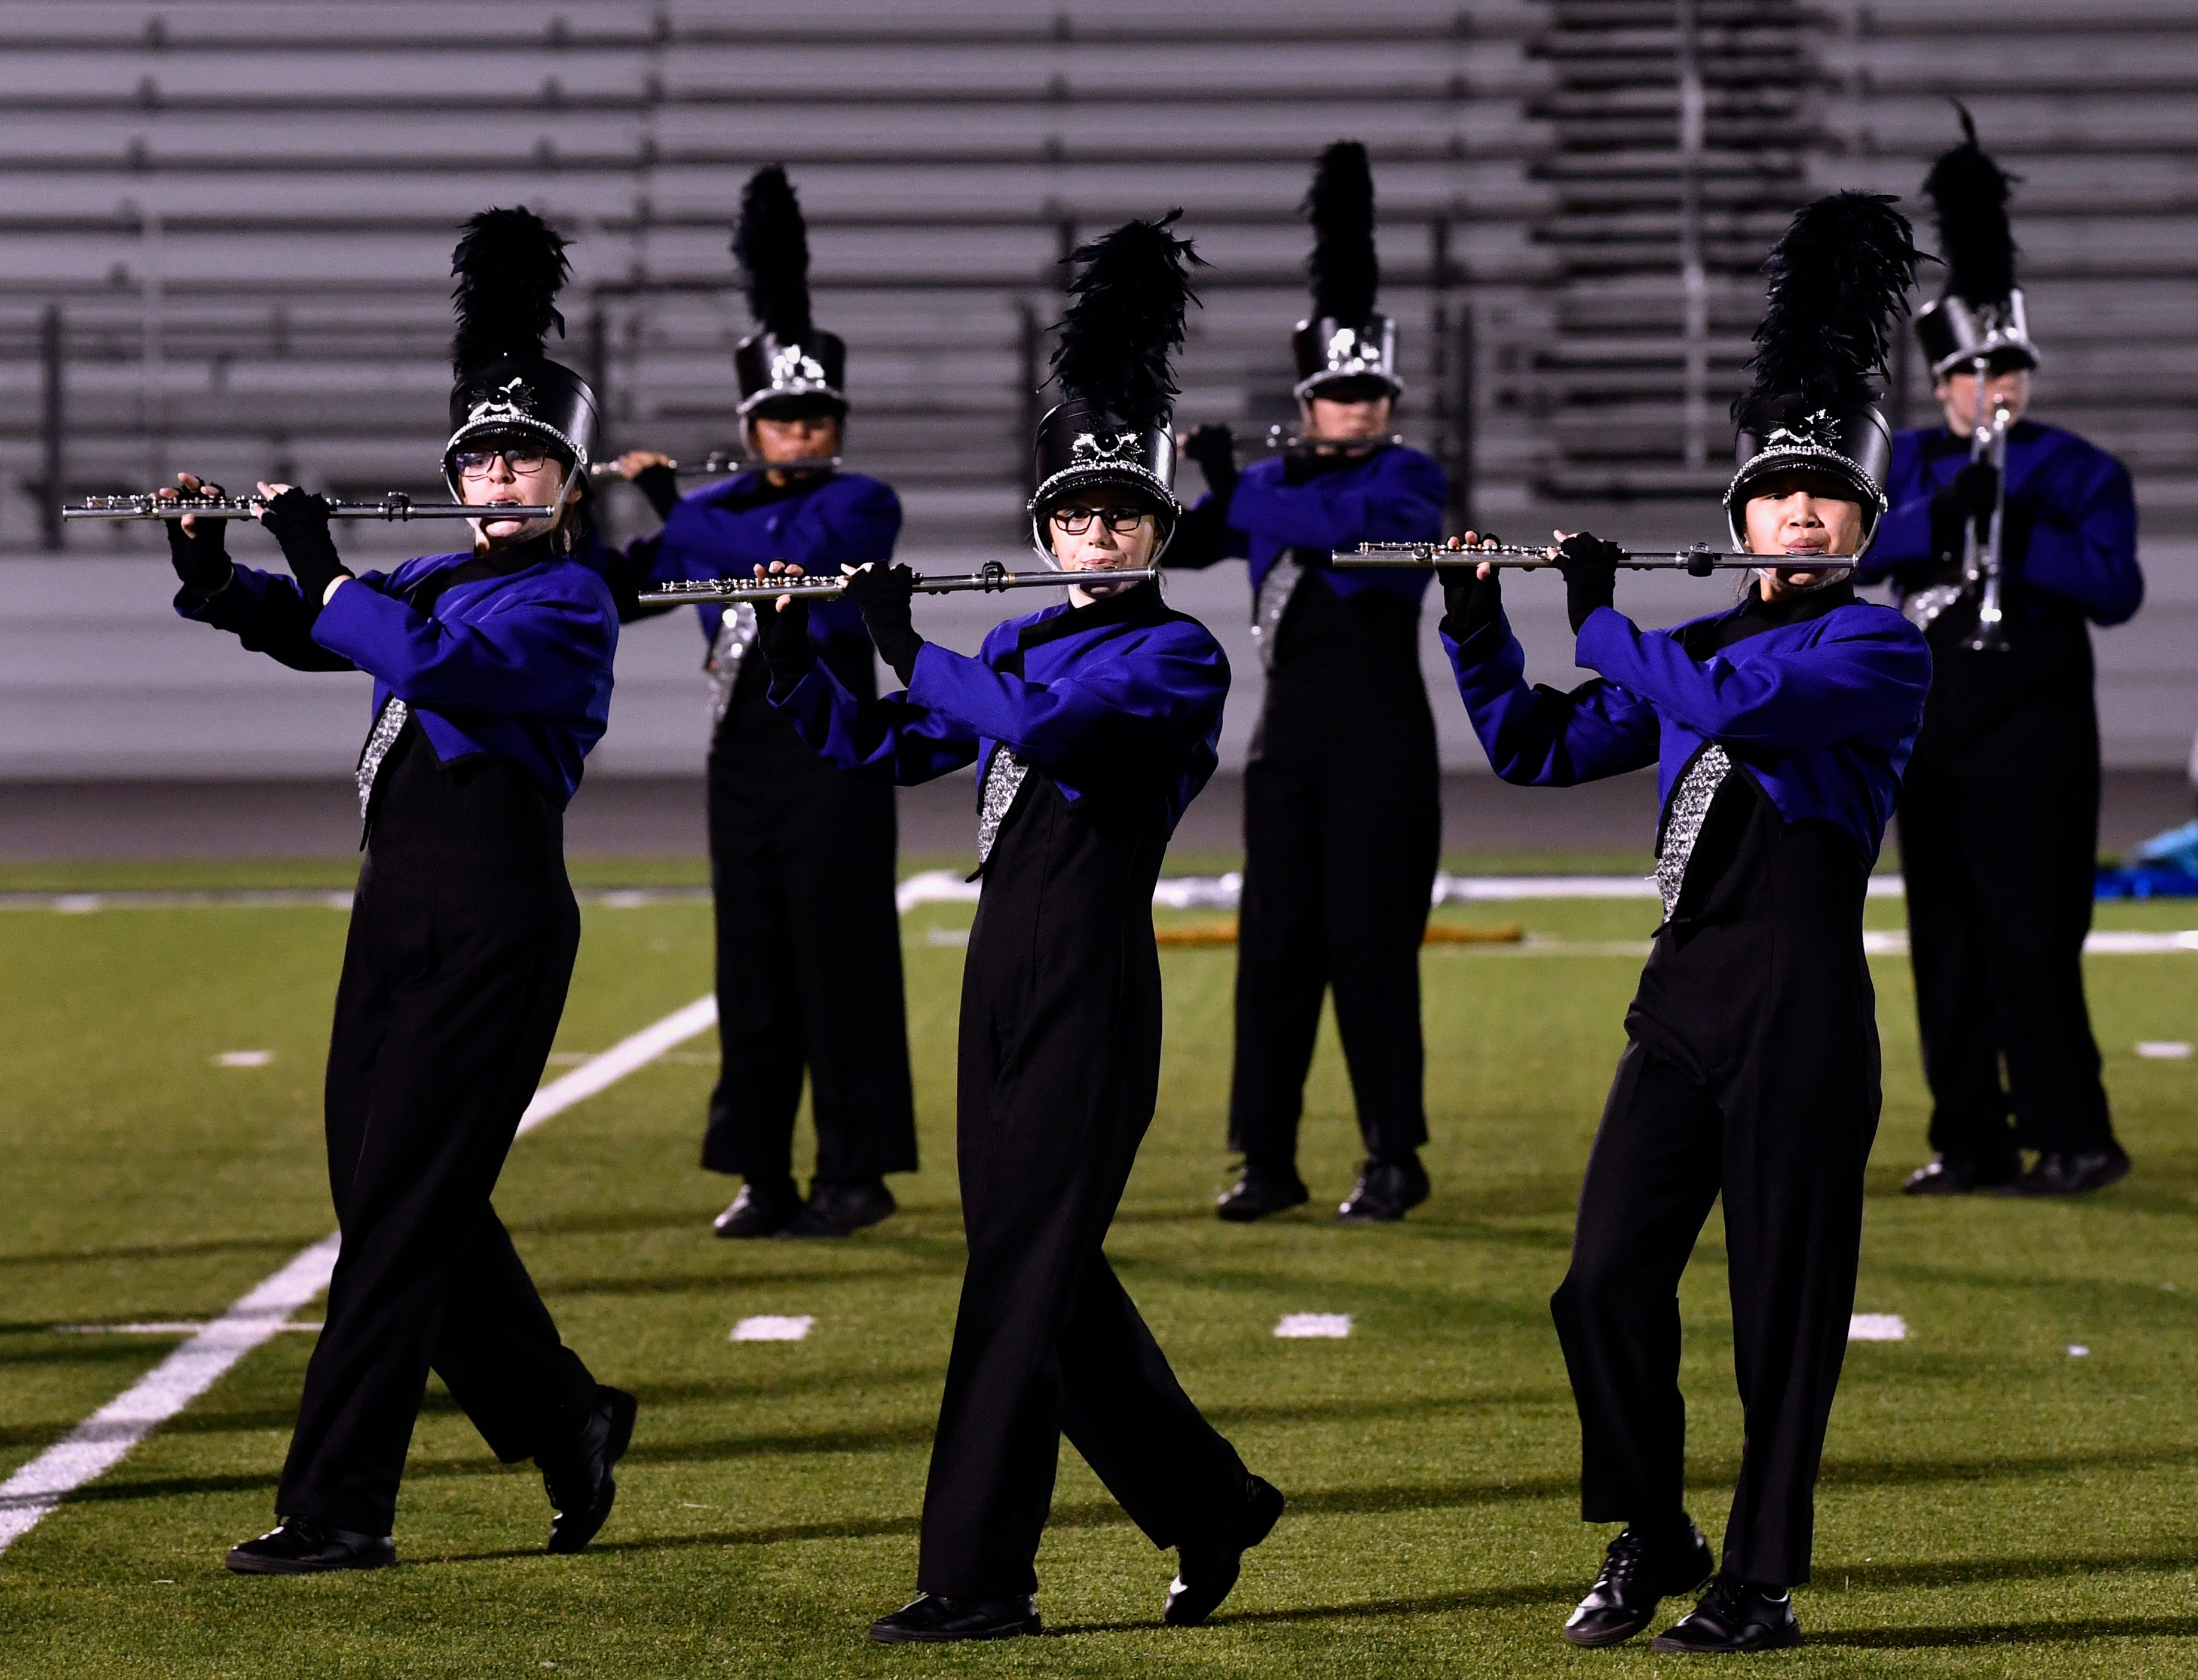 The Wylie High School marching band Pure Gold performs Monday. The band earned a Division 1 rating.